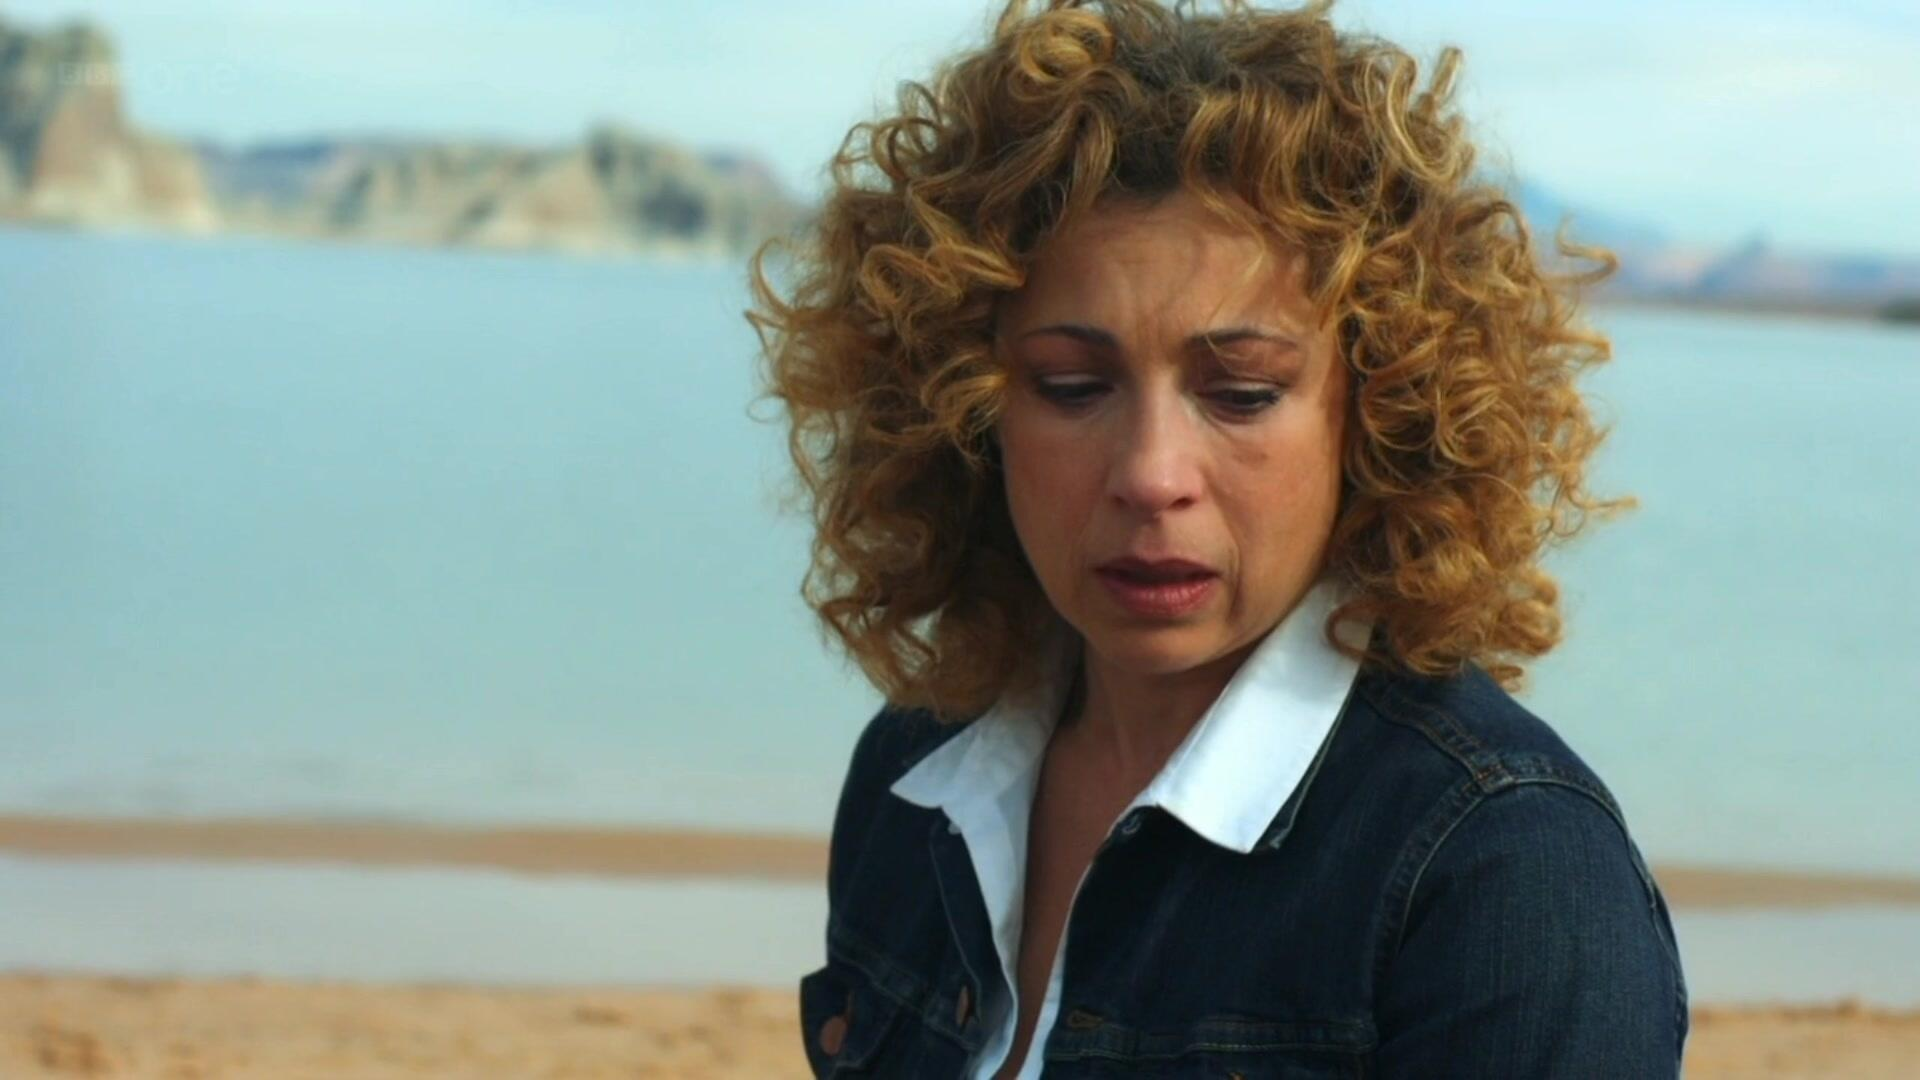 When she's sad she's still incredibly beautiful. </3 #DoctorWho http://t.co/dtyyCIKfrD